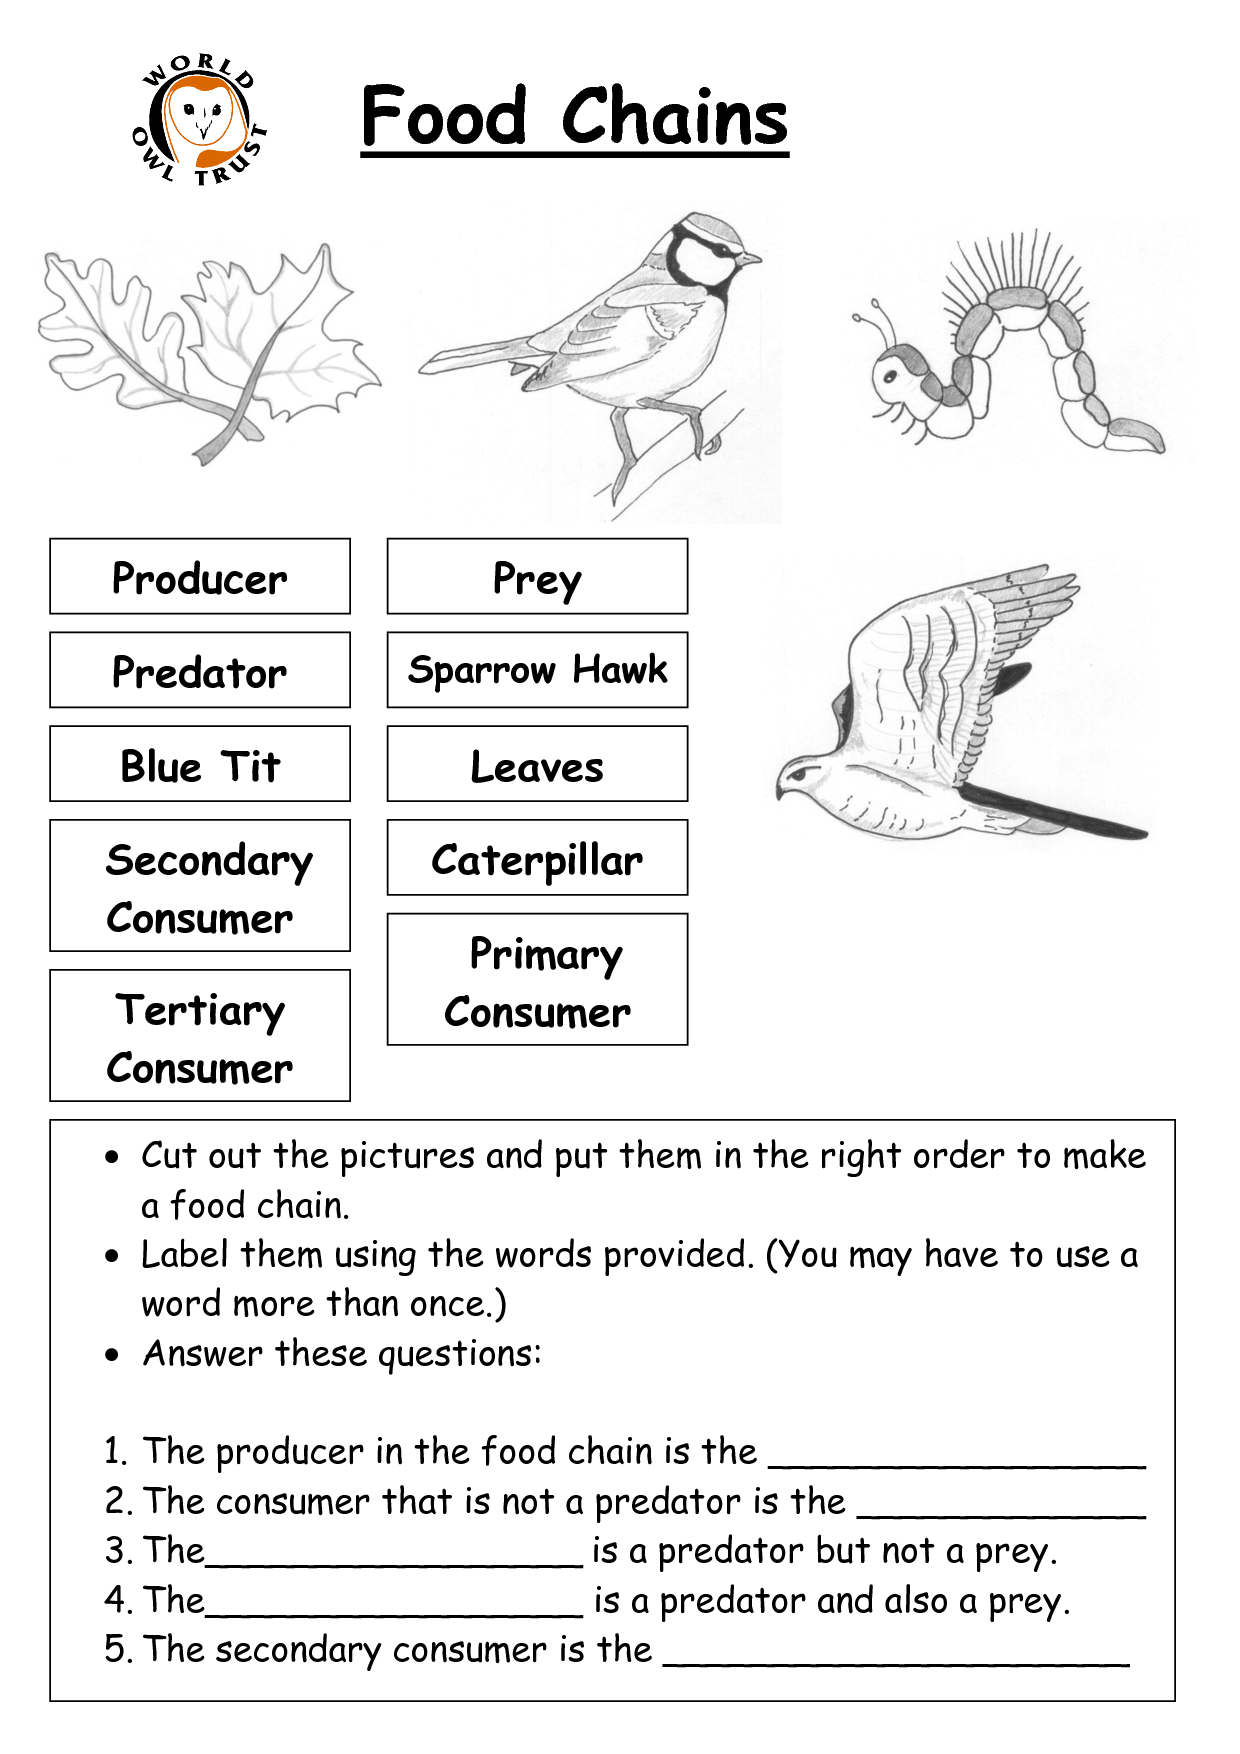 Food Chain Worksheet 3rd Grade